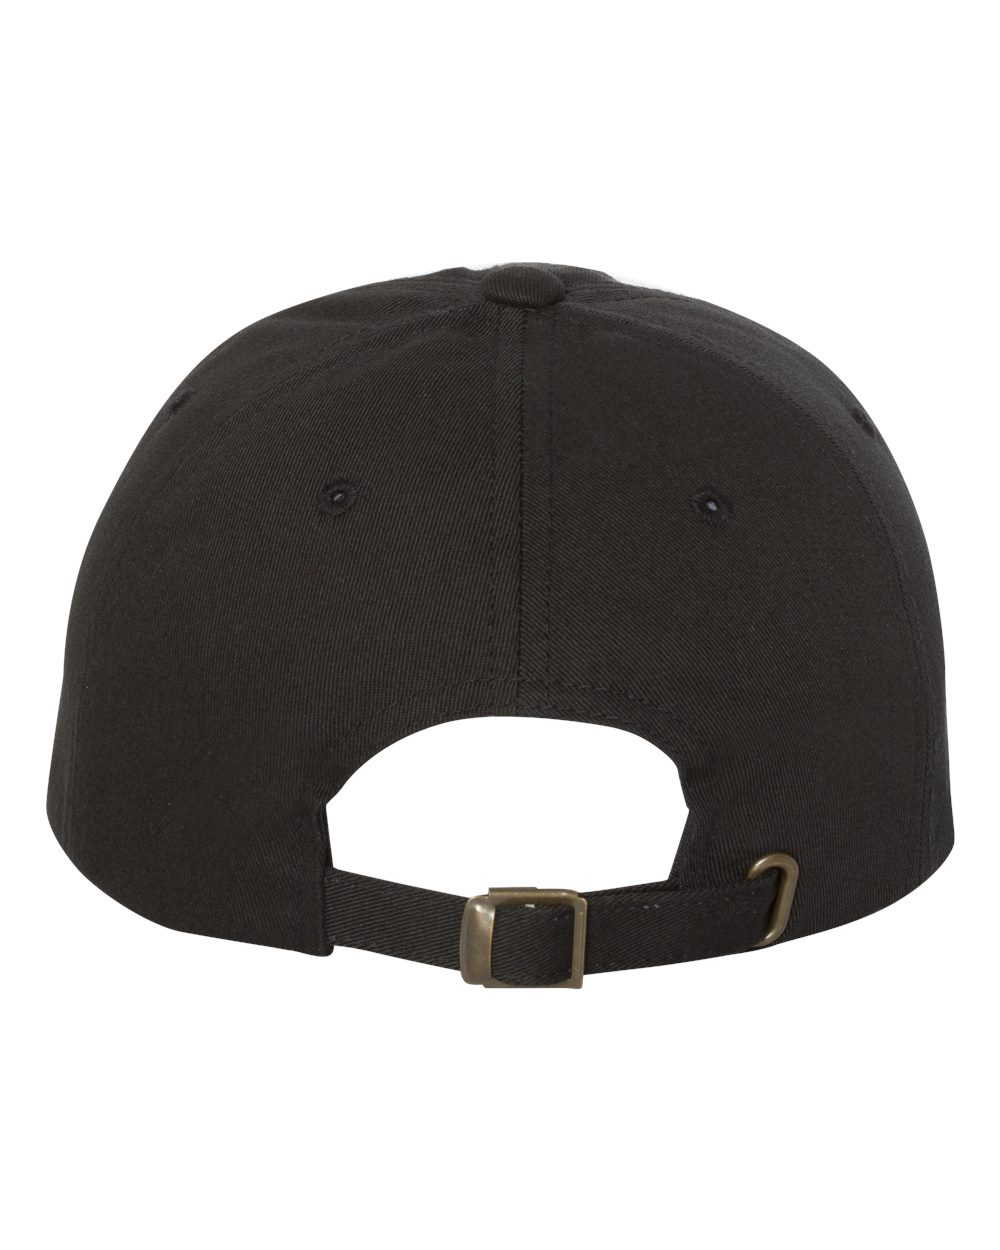 029e58f3bc2 6245CM Yupoong Unstructured Classic Dad s Cap   Headwear